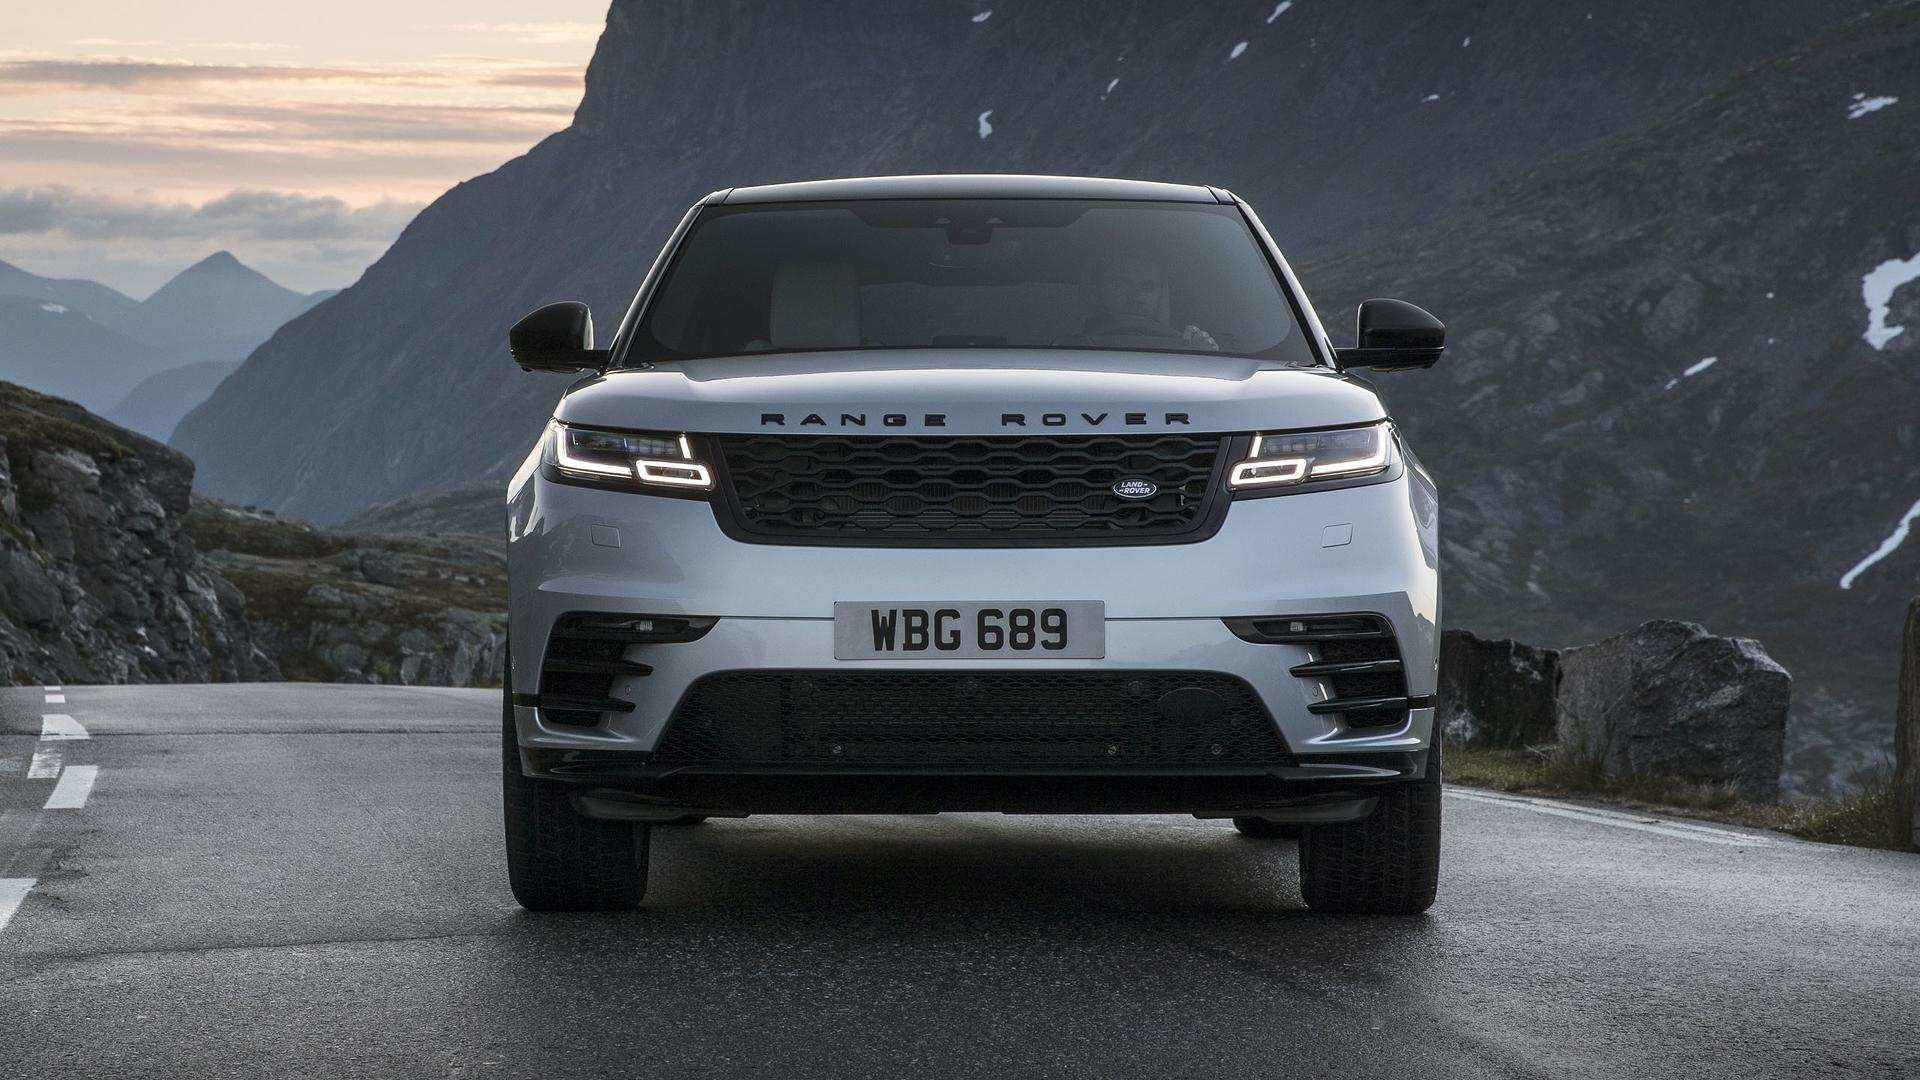 22 Best Review Jaguar Land Rover 2020 New Concept by Jaguar Land Rover 2020